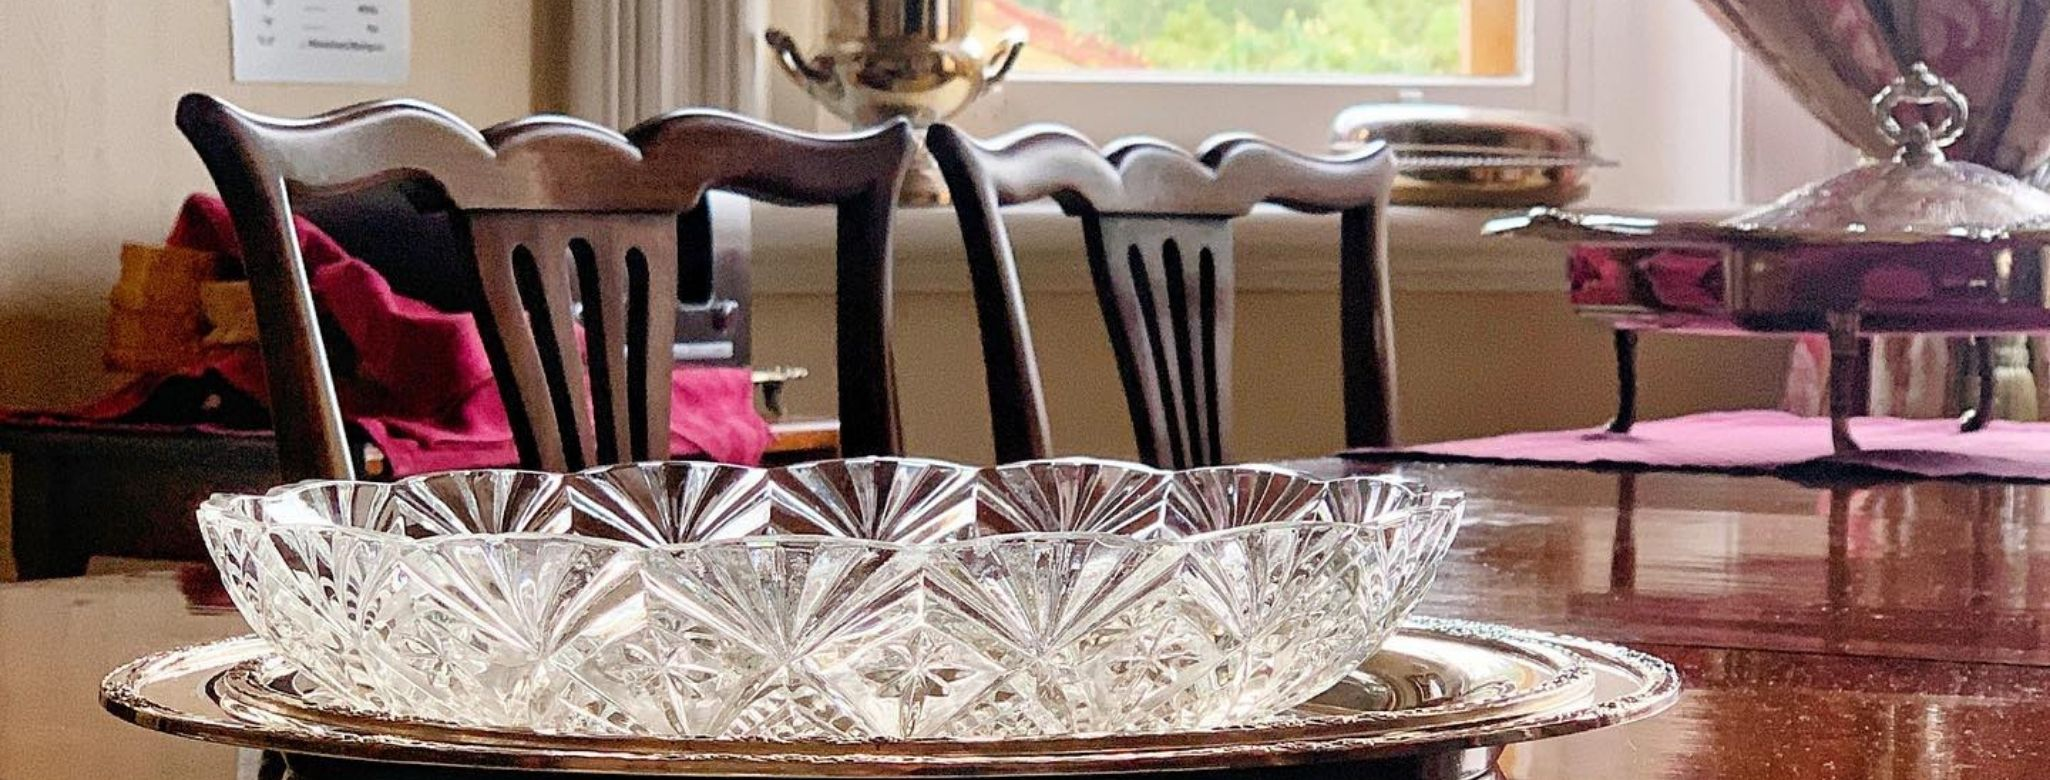 Silver Service In The Dining Room At Penghana Bed And Breakfast, Queenstown, Tasmania